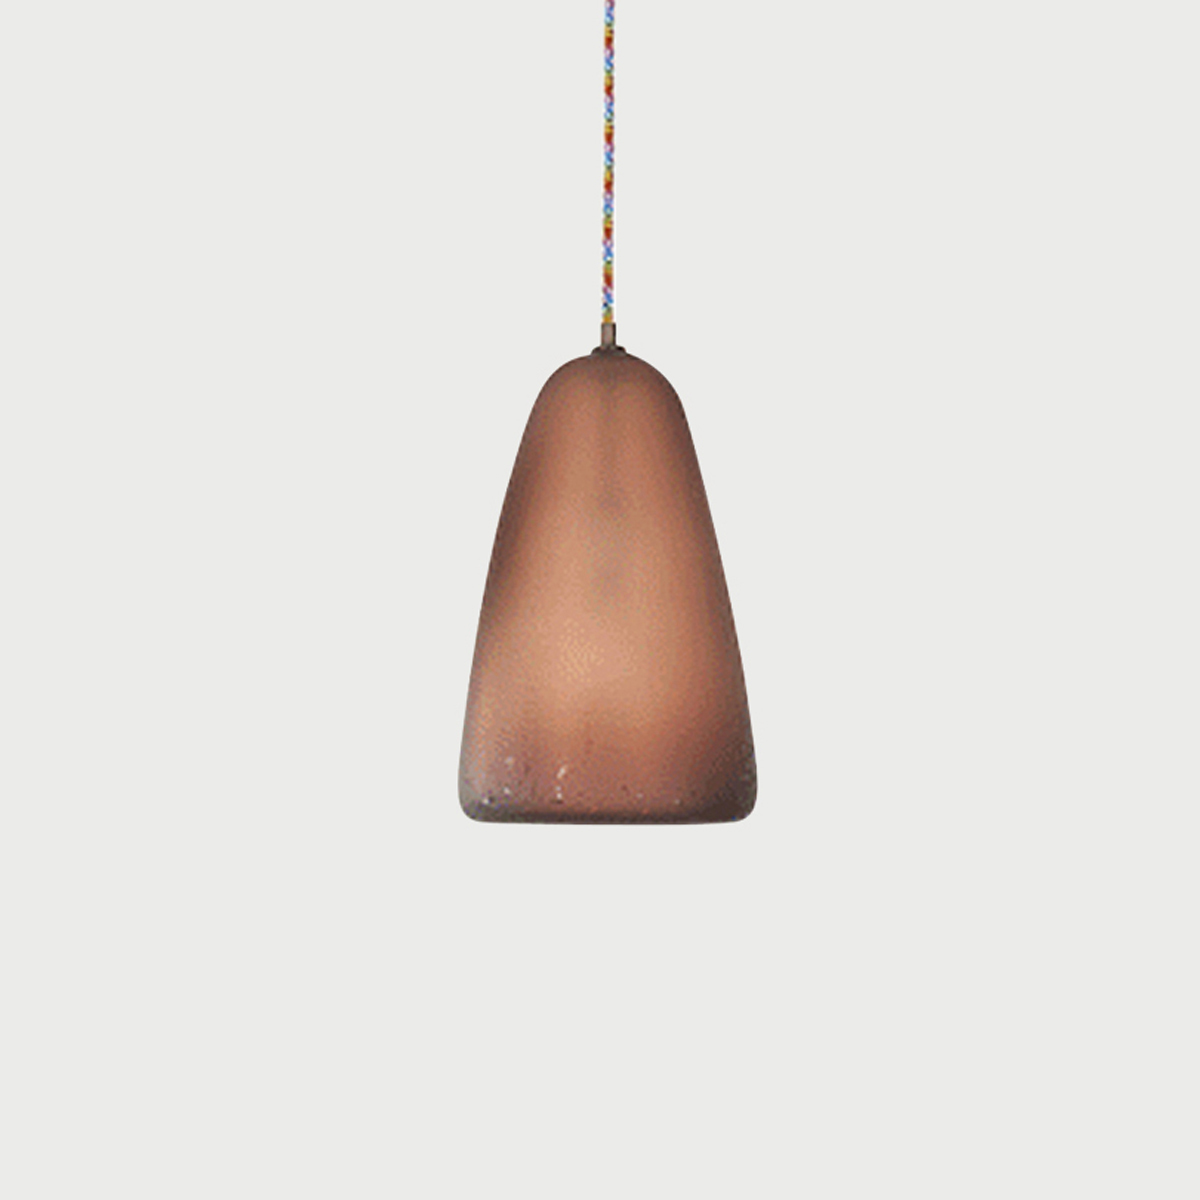 Dunce (GUMI PENDANT Collection)